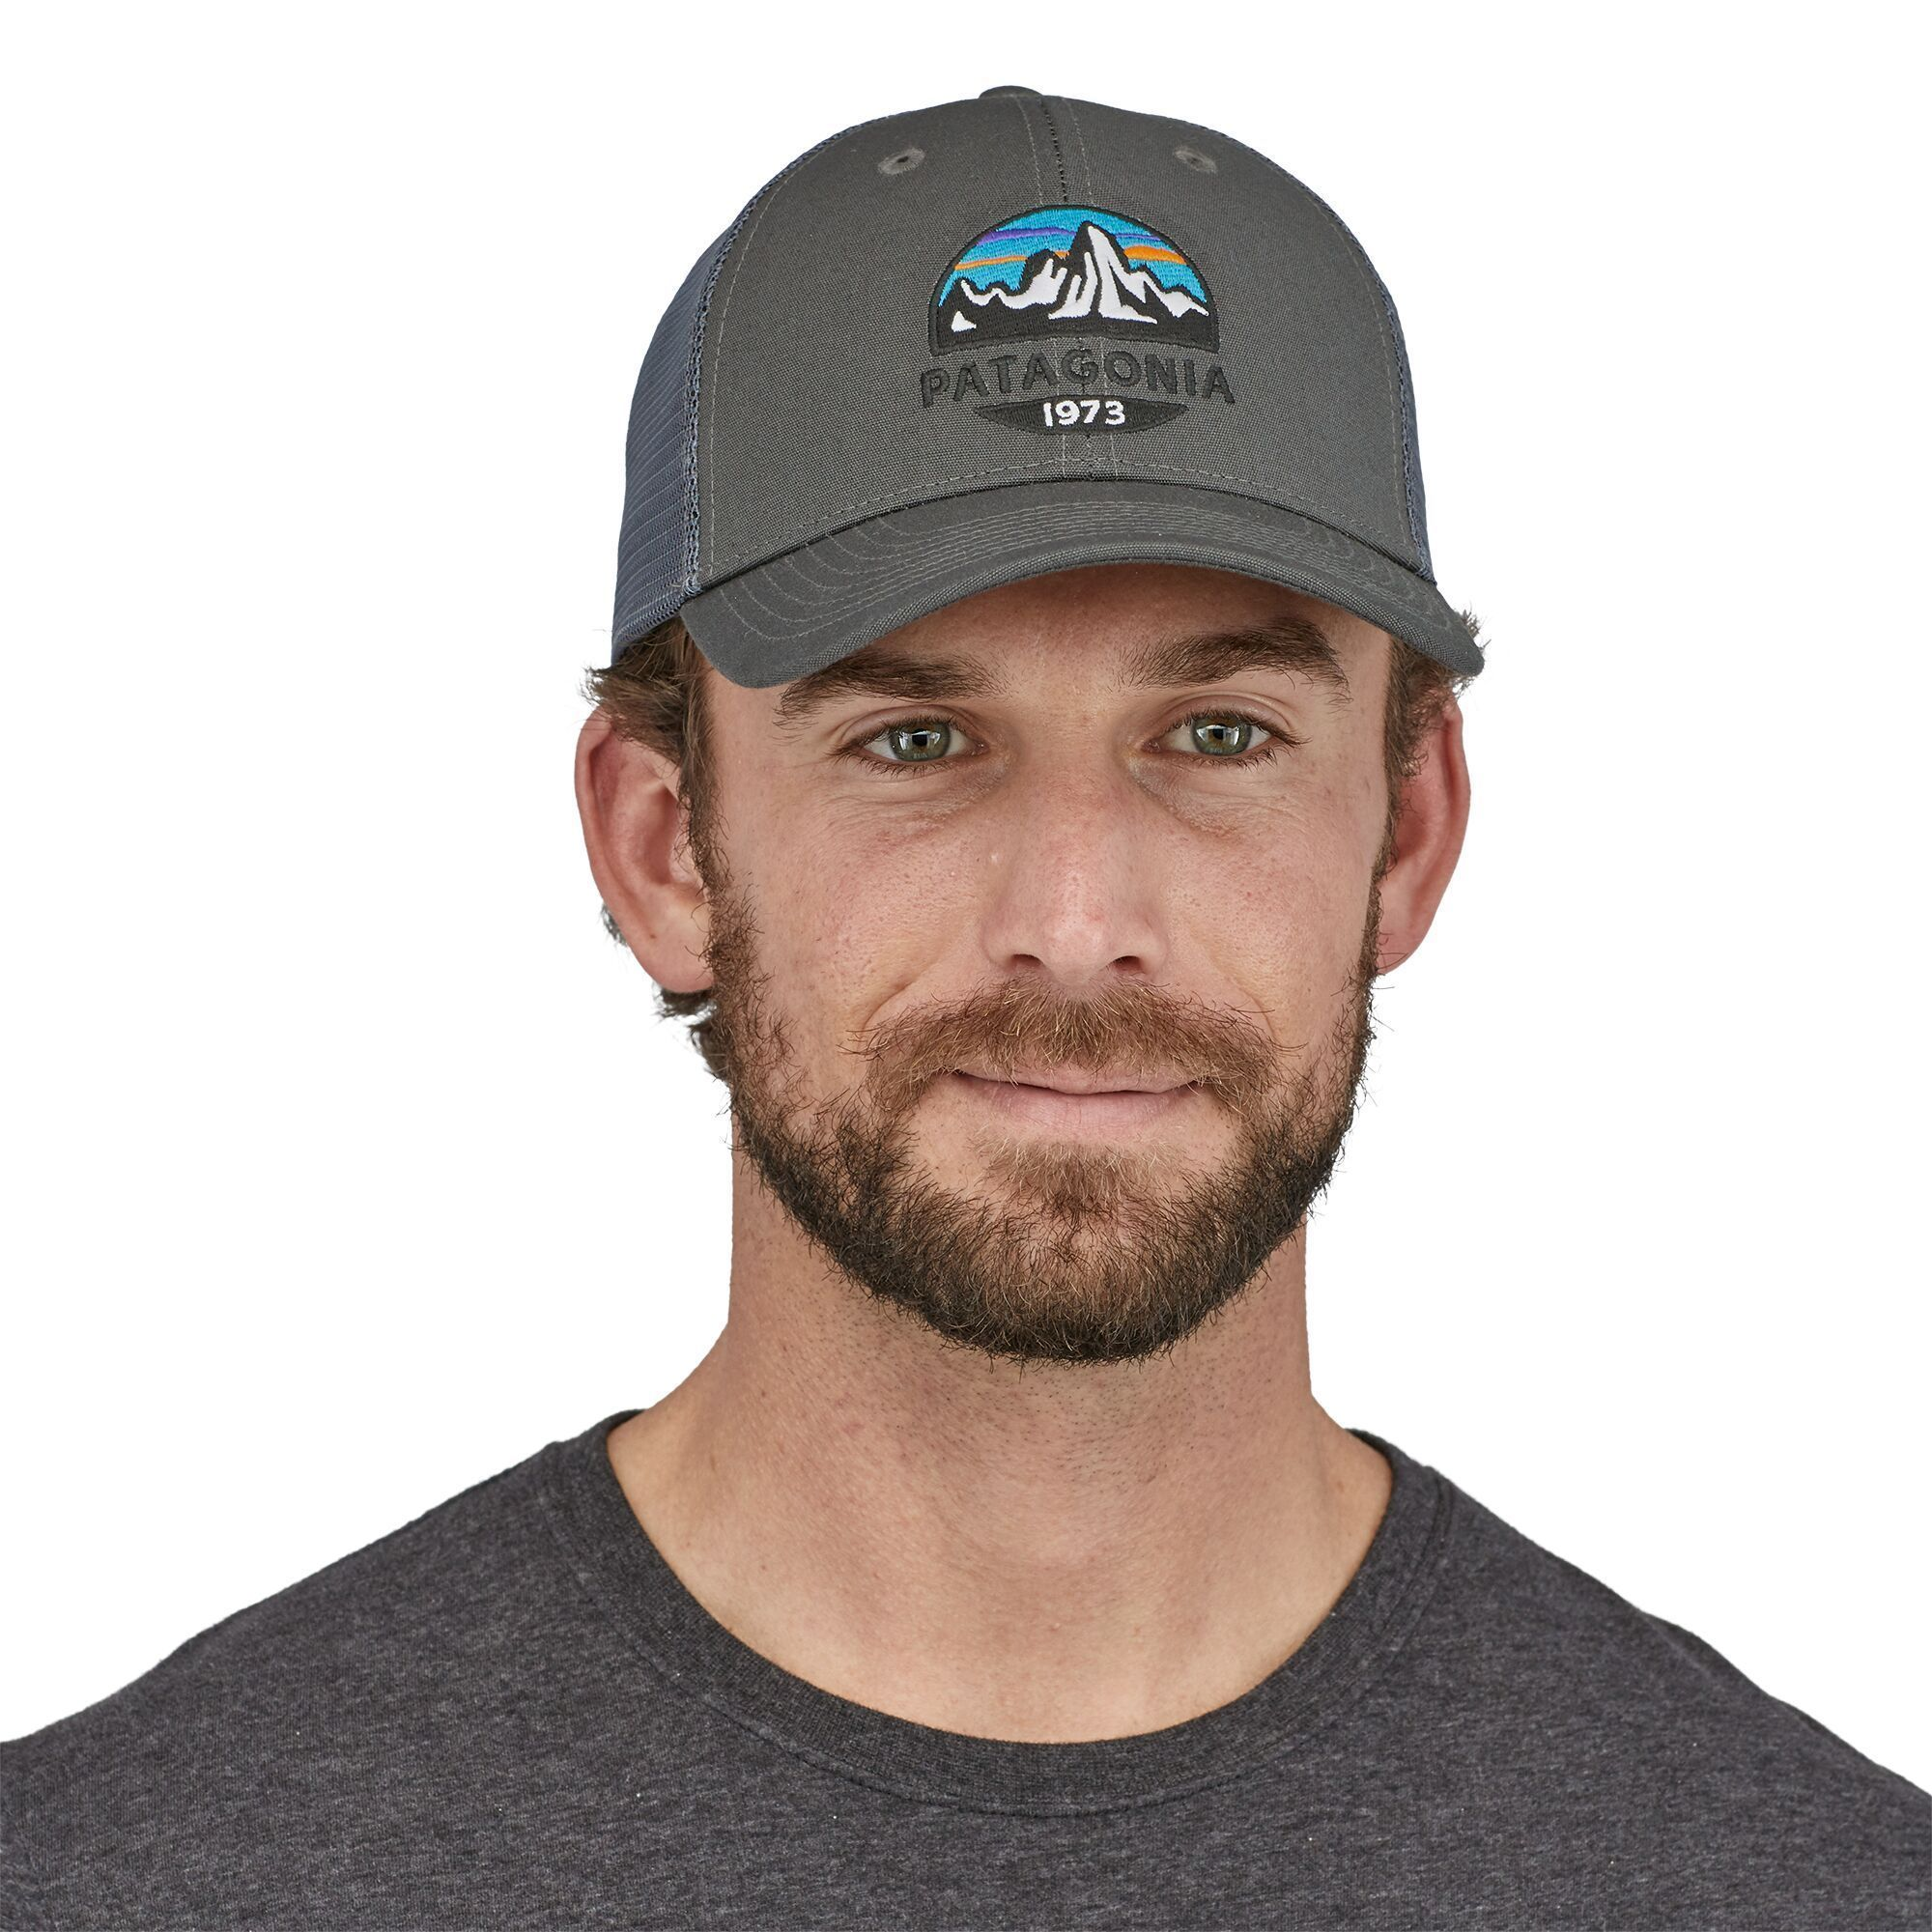 Patagonia - Fitz Roy Scope LoPro Trucker Hat - Organic Cotton - Weekendbee - sustainable sportswear